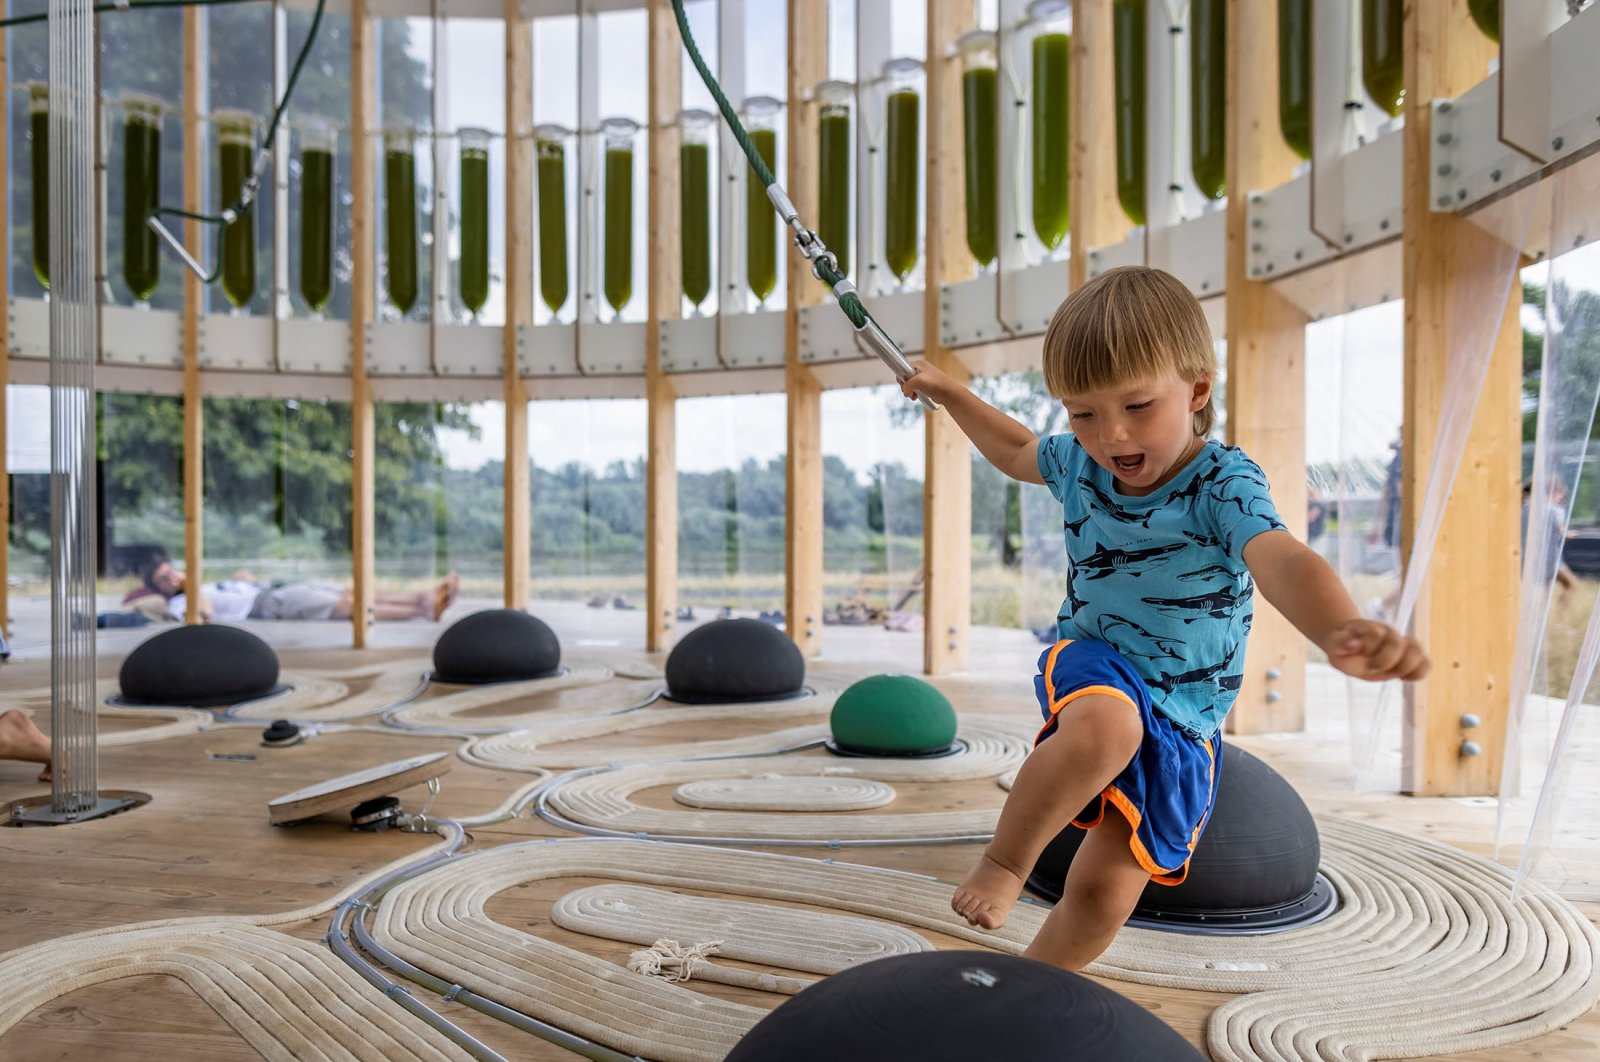 Four-year-old Felek plays in an AirBubble, an innovative playground providing clean air thanks to algae (seen in tubes in the background) that absorbs pollutants and CO2, in Warsaw, Poland, July 26, 2021. (AFP Photo)